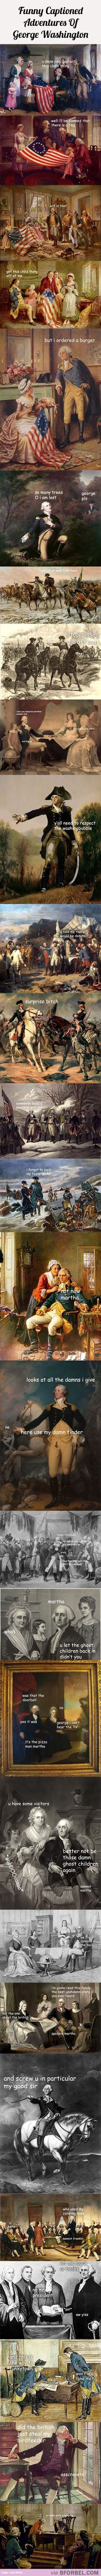 George Washington - The sassy years